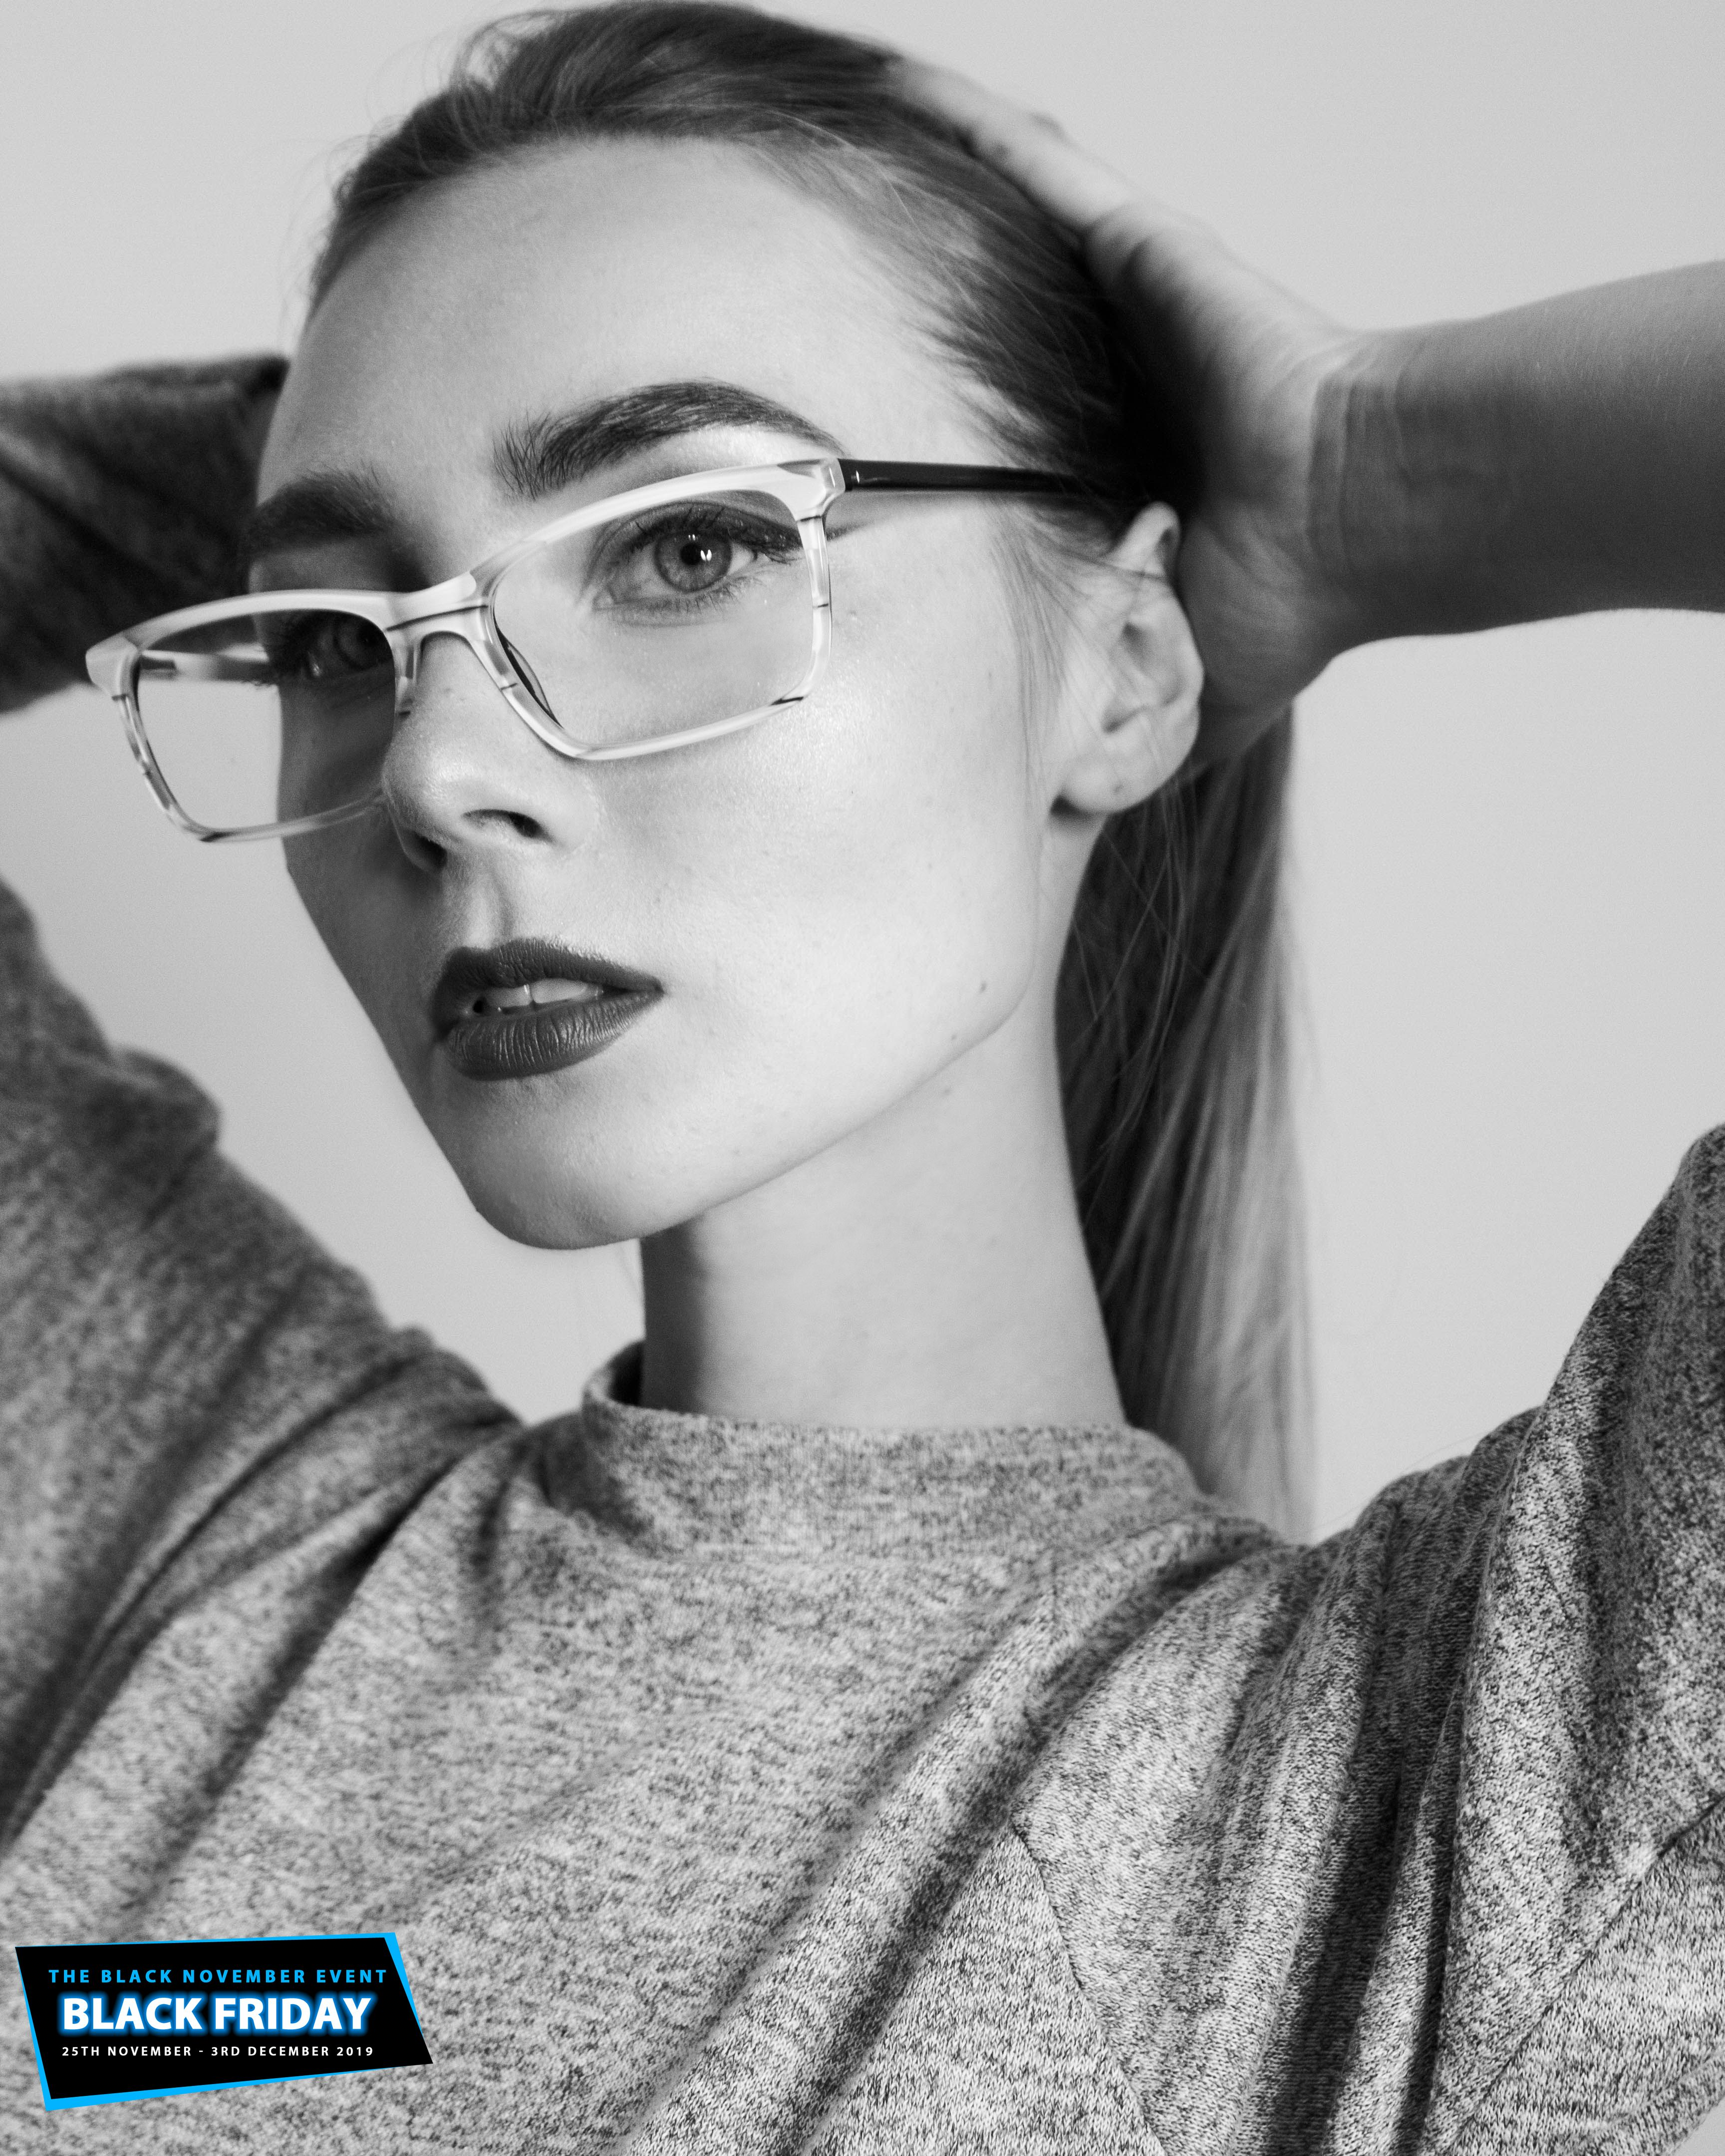 If You Re In Search Of Impeccable Spectacles For Your Everyday Eyewear Check Out This Rectangular Light Acetat With Images Savannah Chat Fashion Frames Digital Protection